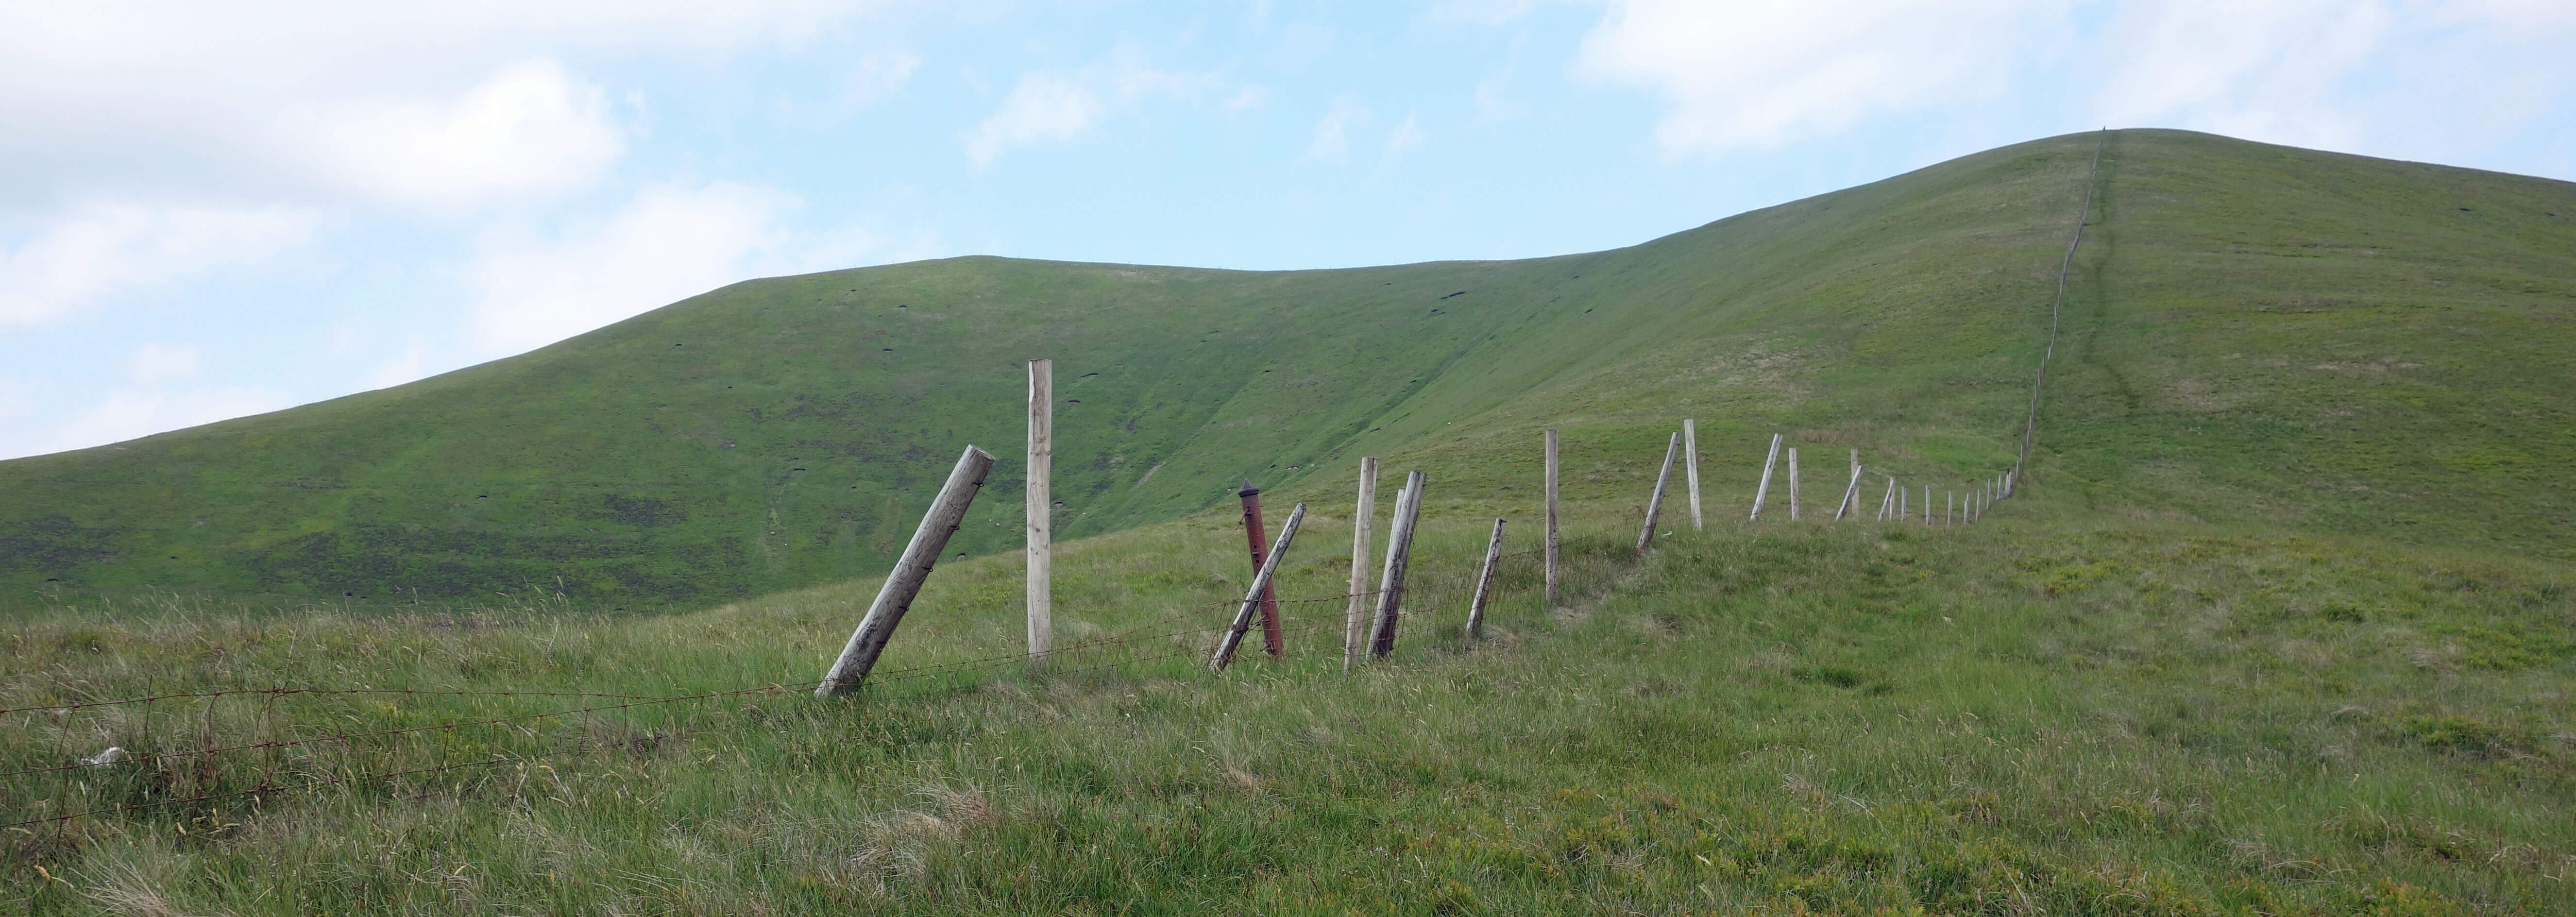 The Hobdale fence